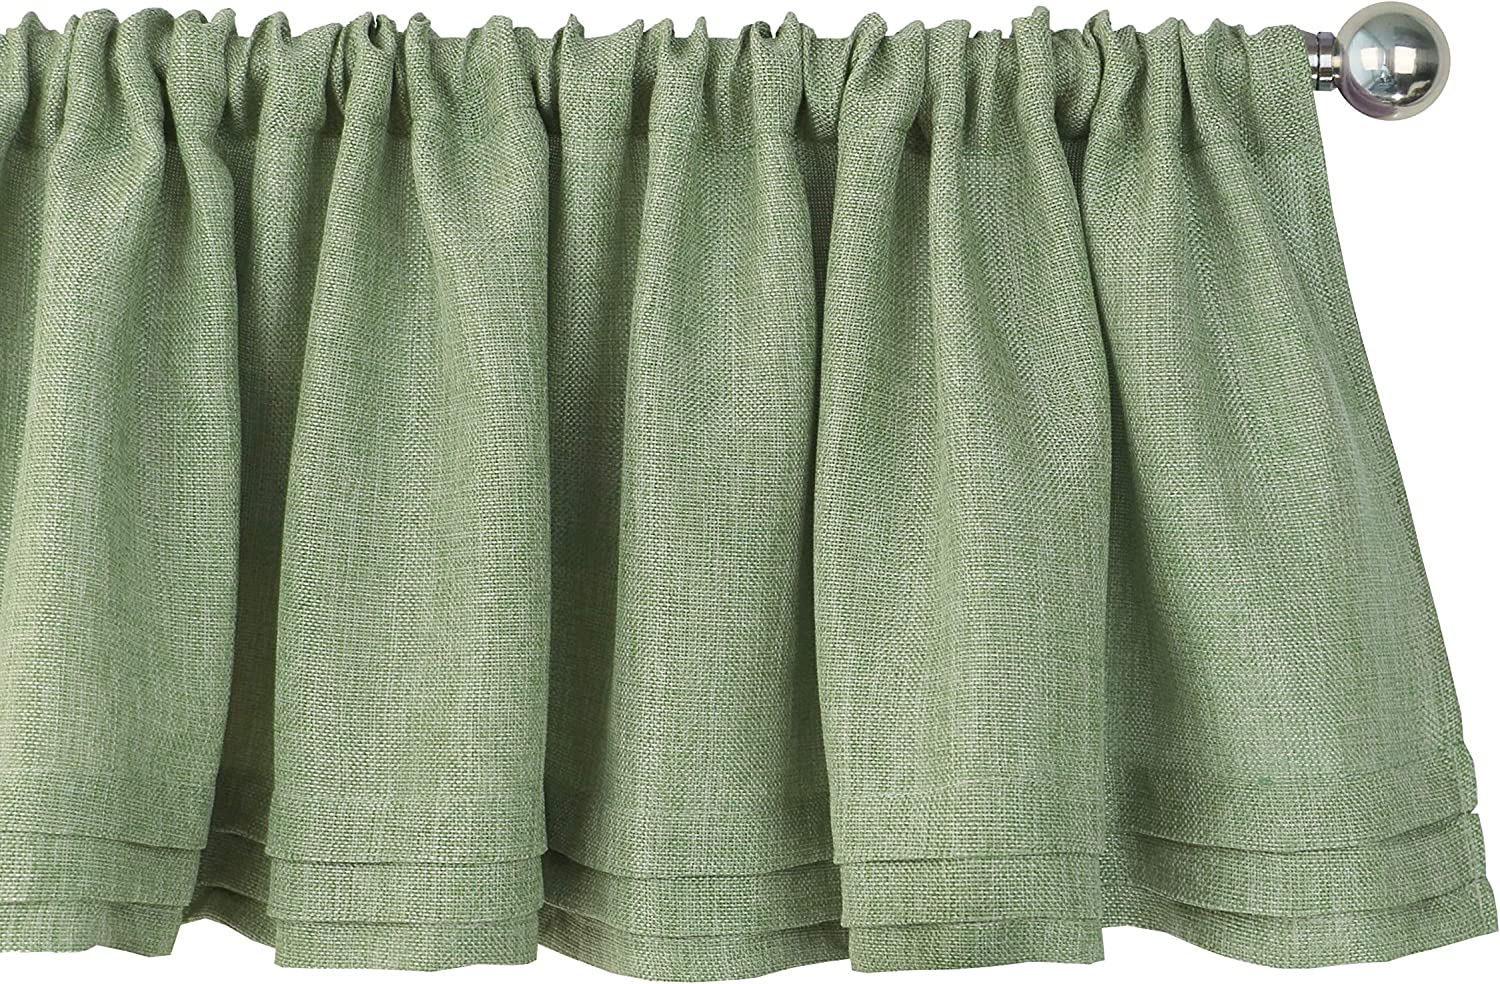 Aiking Home Semi-Sheer Faux Linen Pleated Valance 56 by 14 Inches